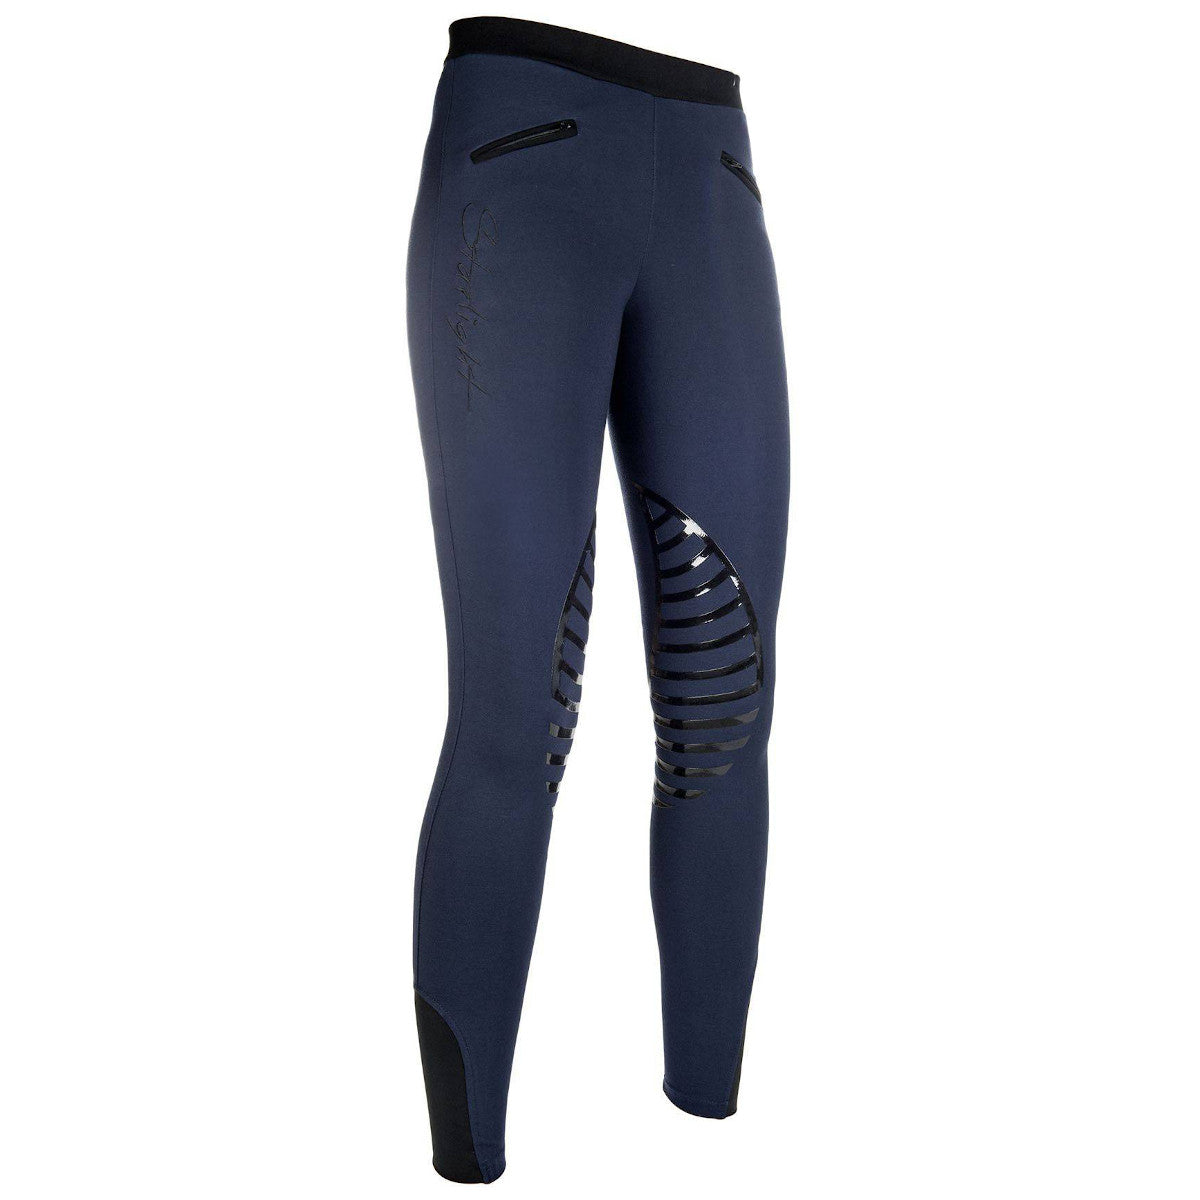 HKM Sports Kid's Starlight Silicone Knee Patch Riding Tights